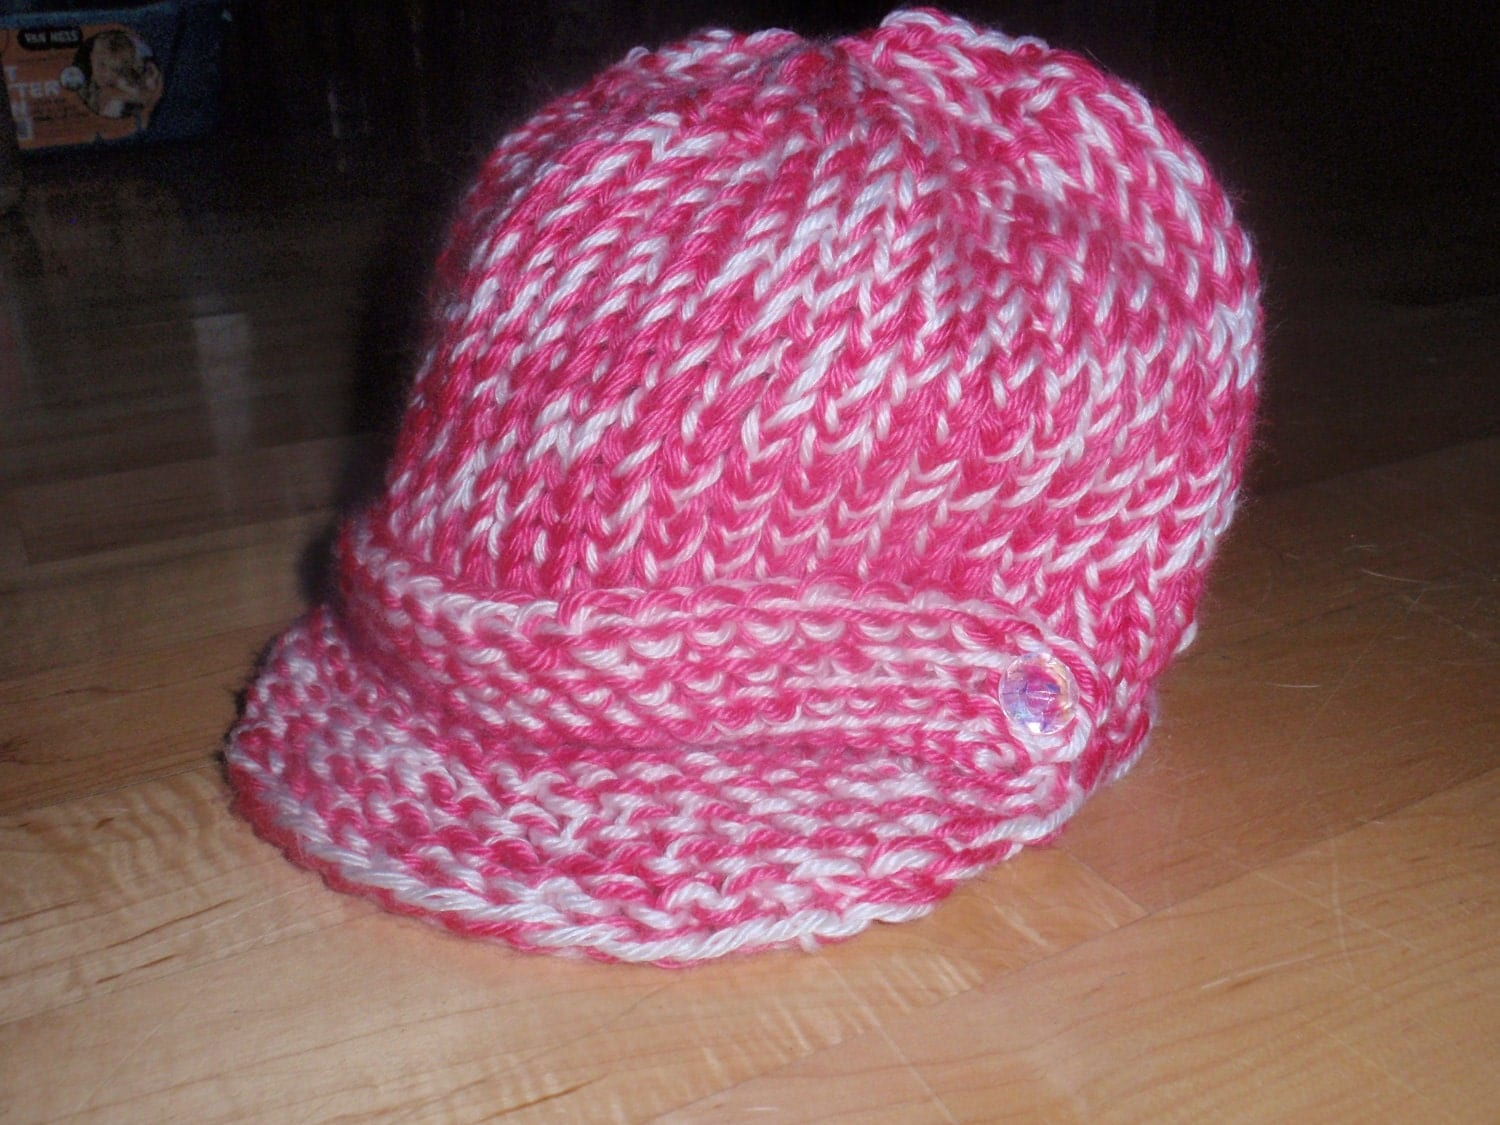 Knitting Loom Hat Stitches : Pattern for Loom Knit Messenger/Newsboy Hat by Cre8tiveCorner